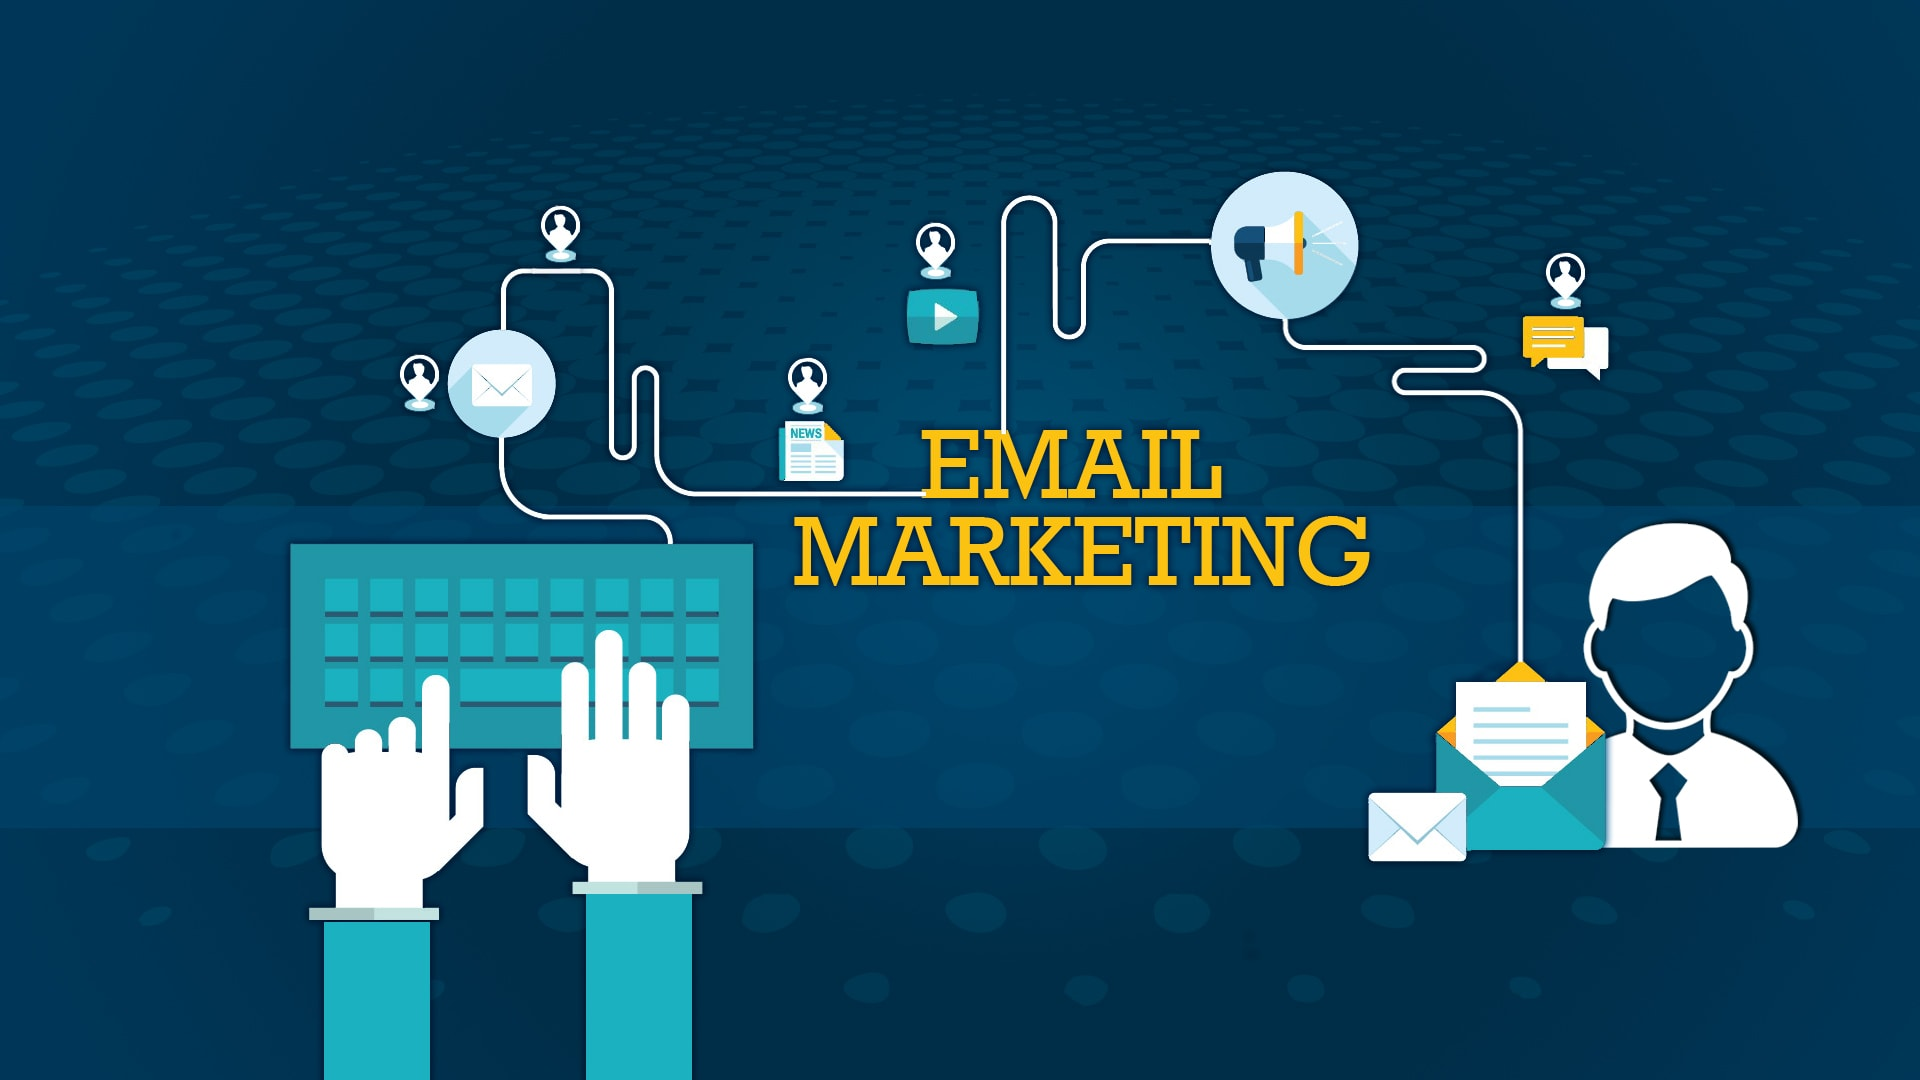 Xây dựng hệ thống Automation Marketing qua email